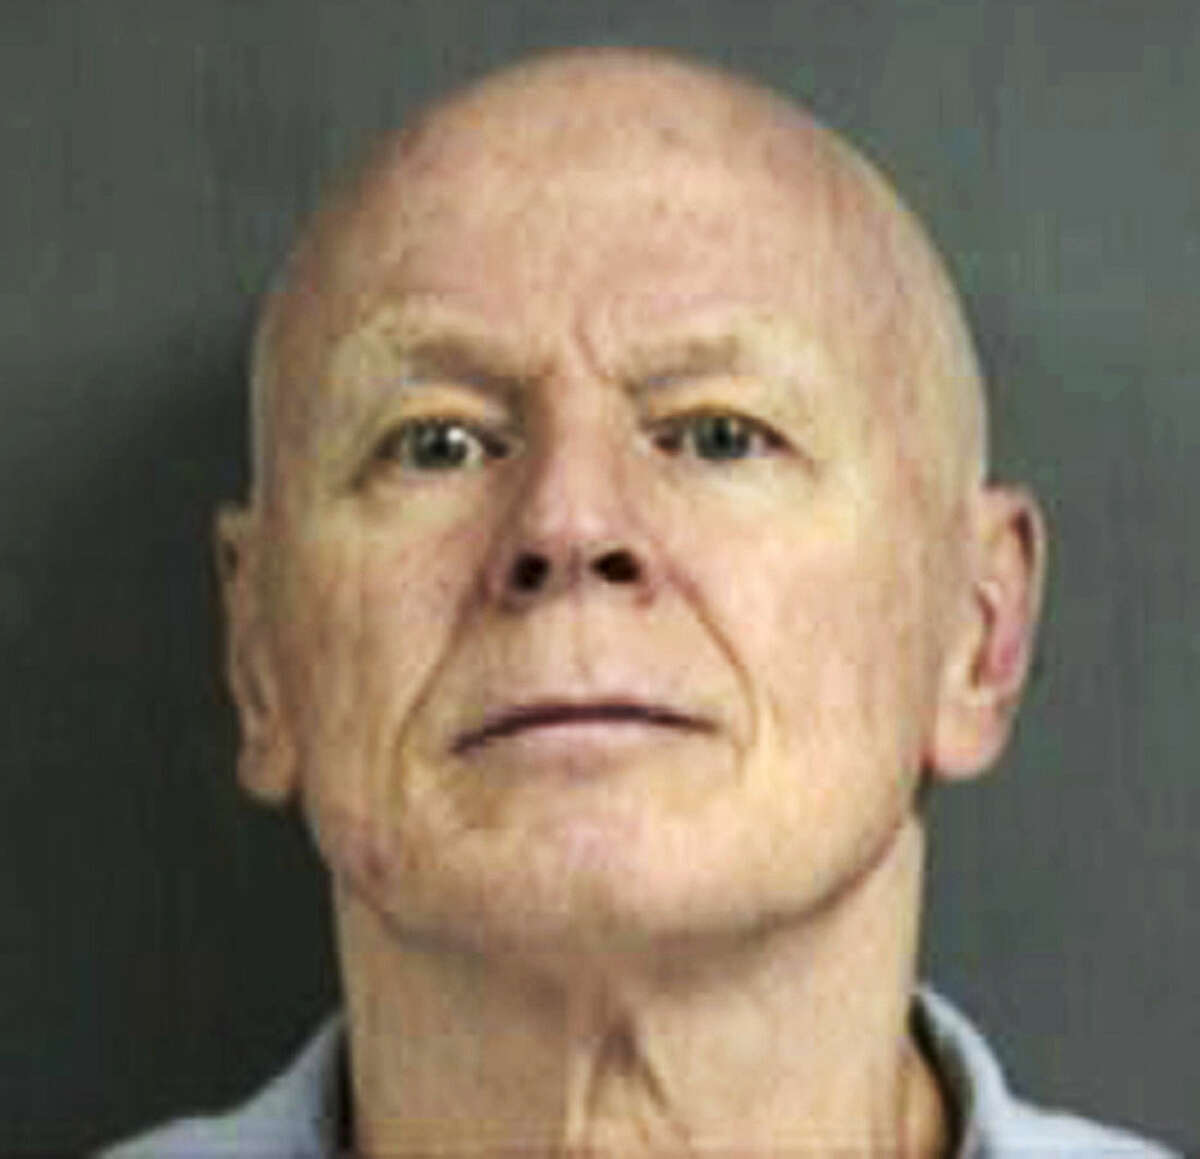 FILE - This undated Connecticut Department of Correction inmate file photo shows Gary Gerard Castonguay, serving a prison sentence after being convicted in 1980 for killing a Plainville, Conn., police officer in 1977. A parole hearing for Castonguay is set for Wednesday, March 25, 2015, at the MacDougall-Walker Correctional Institution in Suffield, as the parole board reconsiders its previous decision to release him. A three-member parole board panel had voted to free Castonguay in July 2015 following a 17-minute hearing without input from the prosecutor or the victim's family. (AP Photo/Connecticut Department of Correction, File)